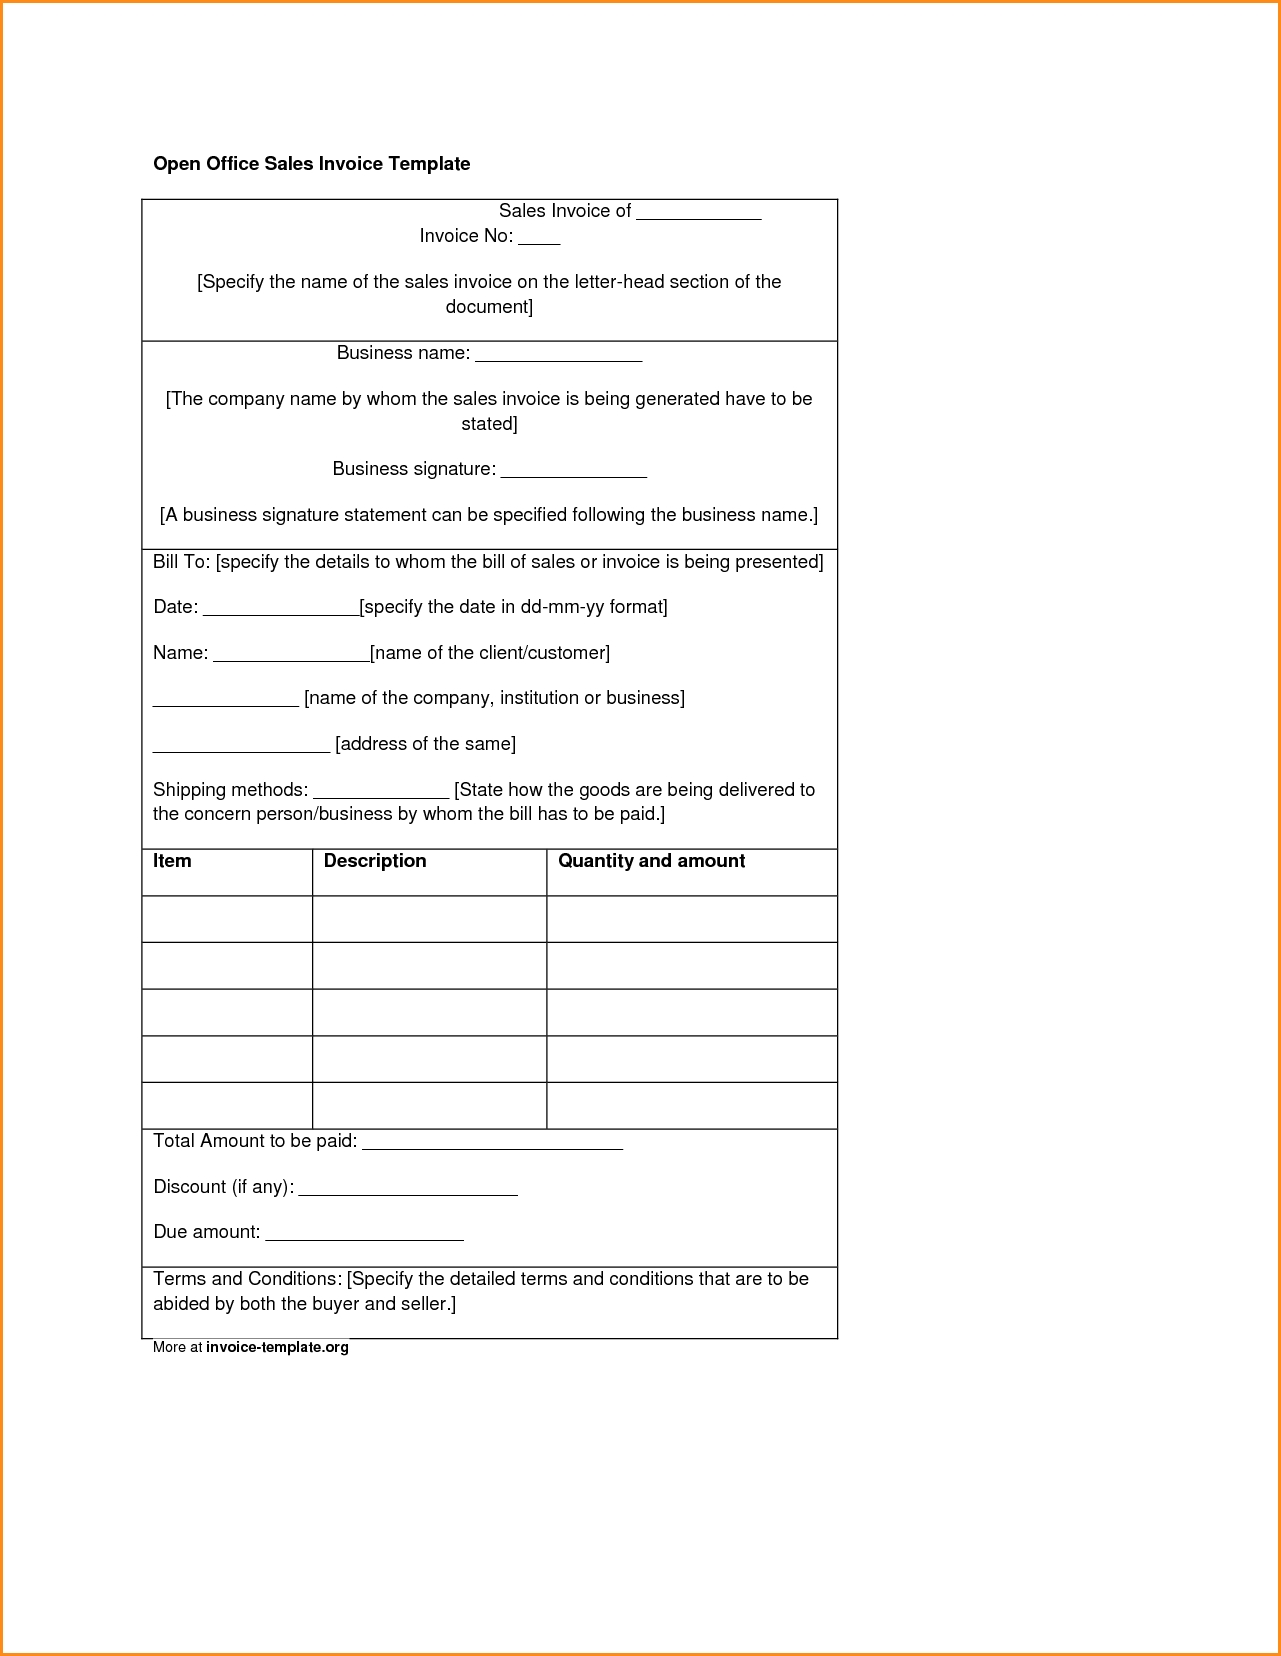 Invoice Template Open Office Invoice Template Ideas - Invoice templates open office